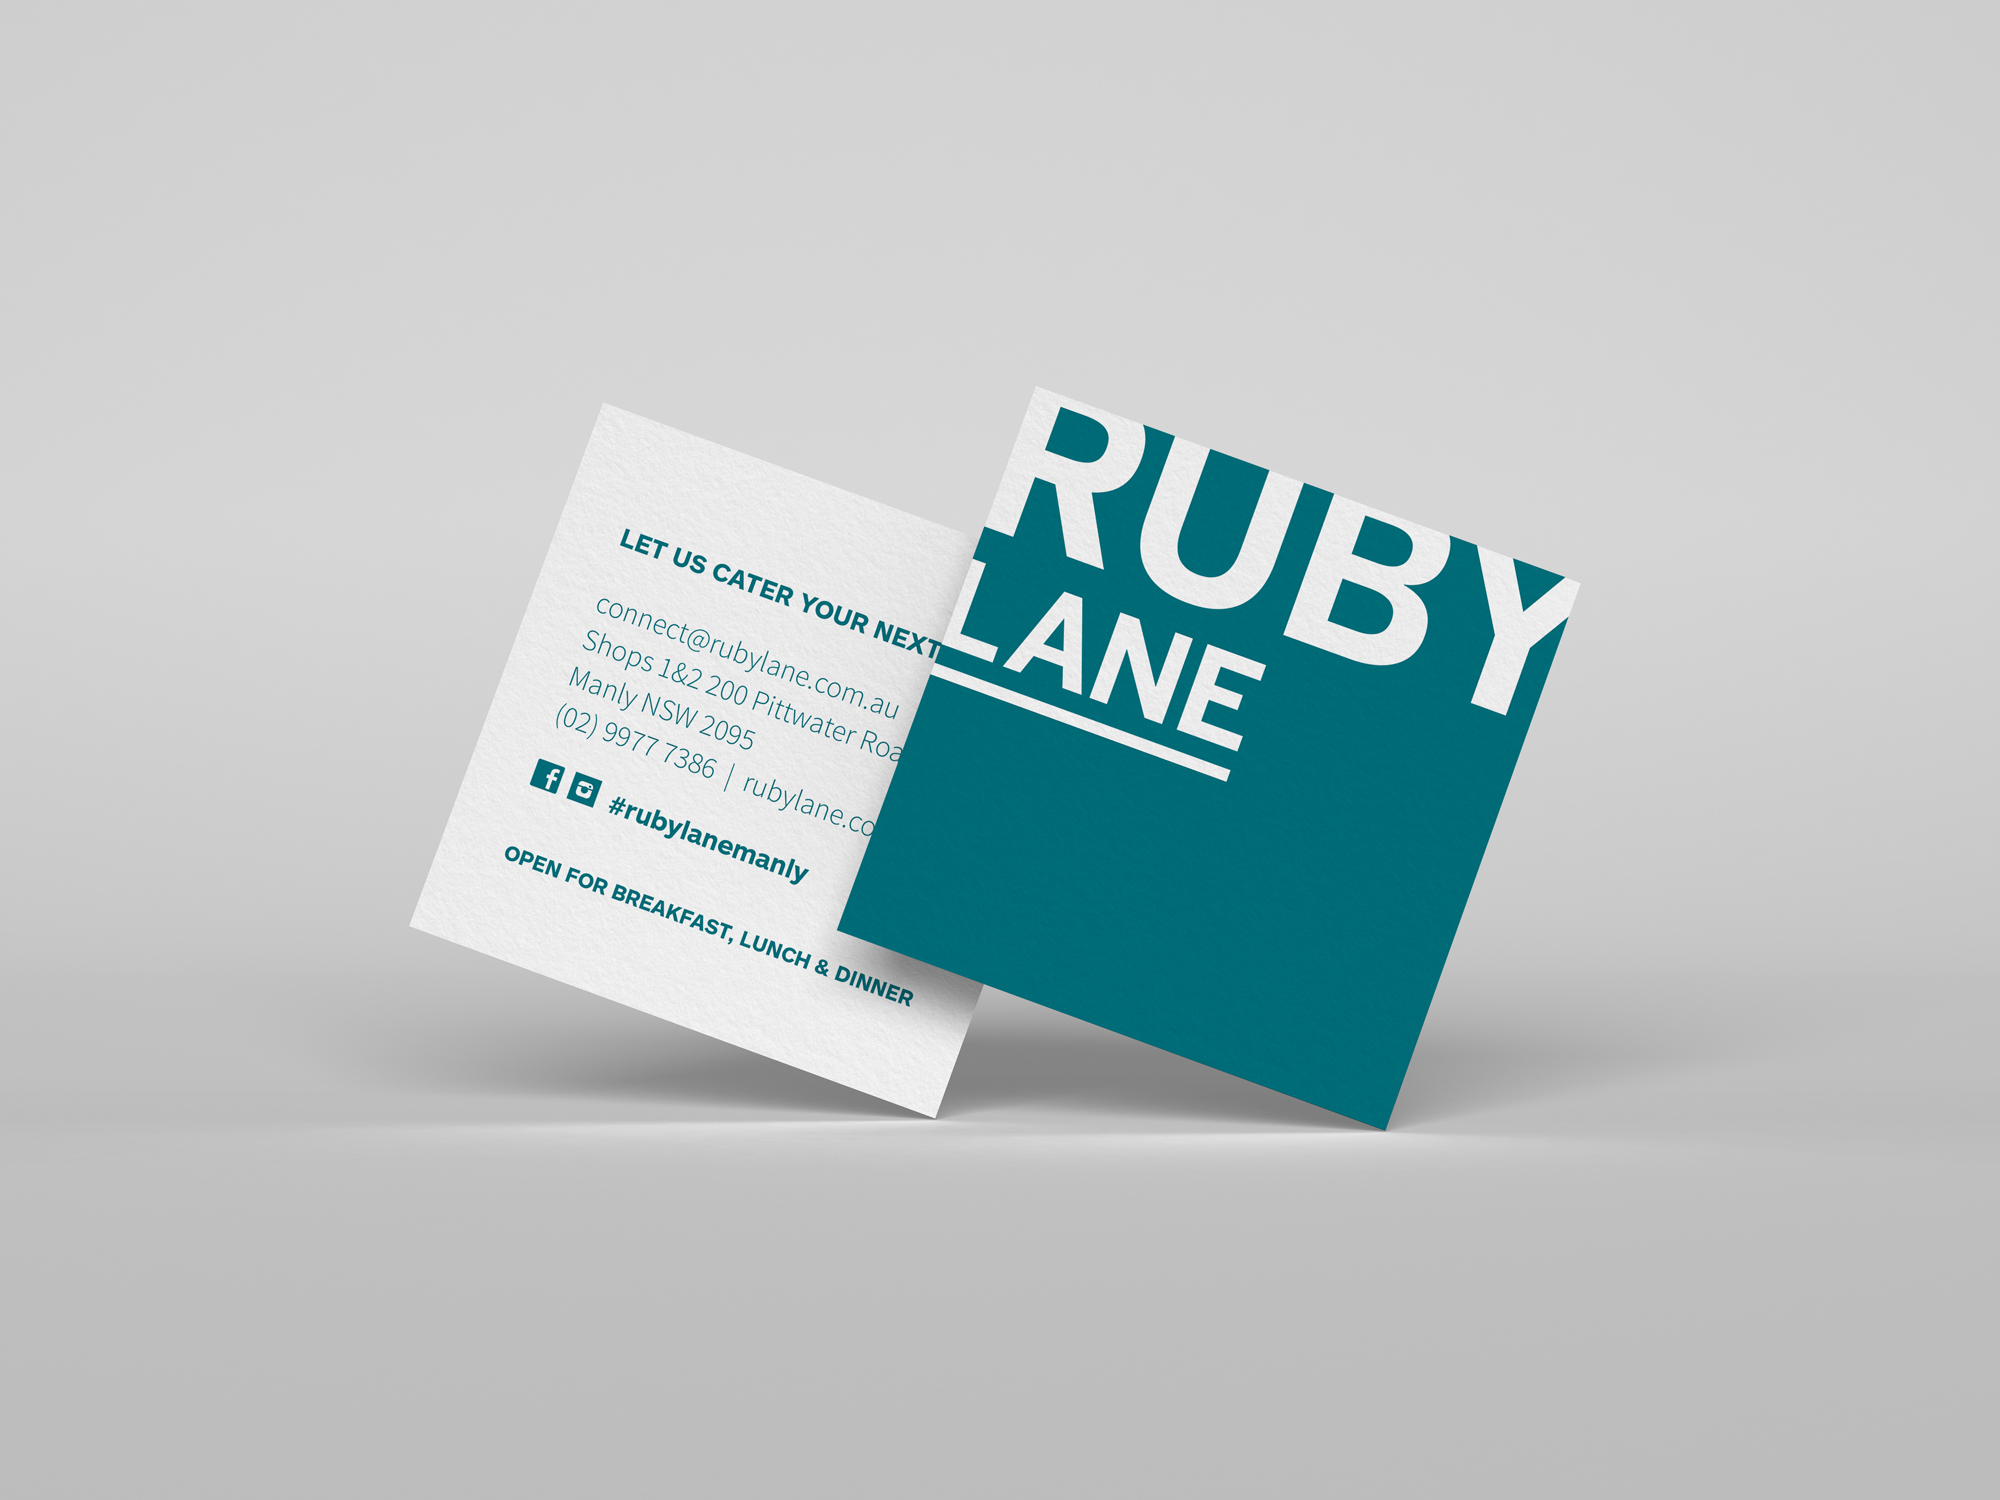 sydney-design-social-ruby-lane-teal-bcard-square-white-reverse-side